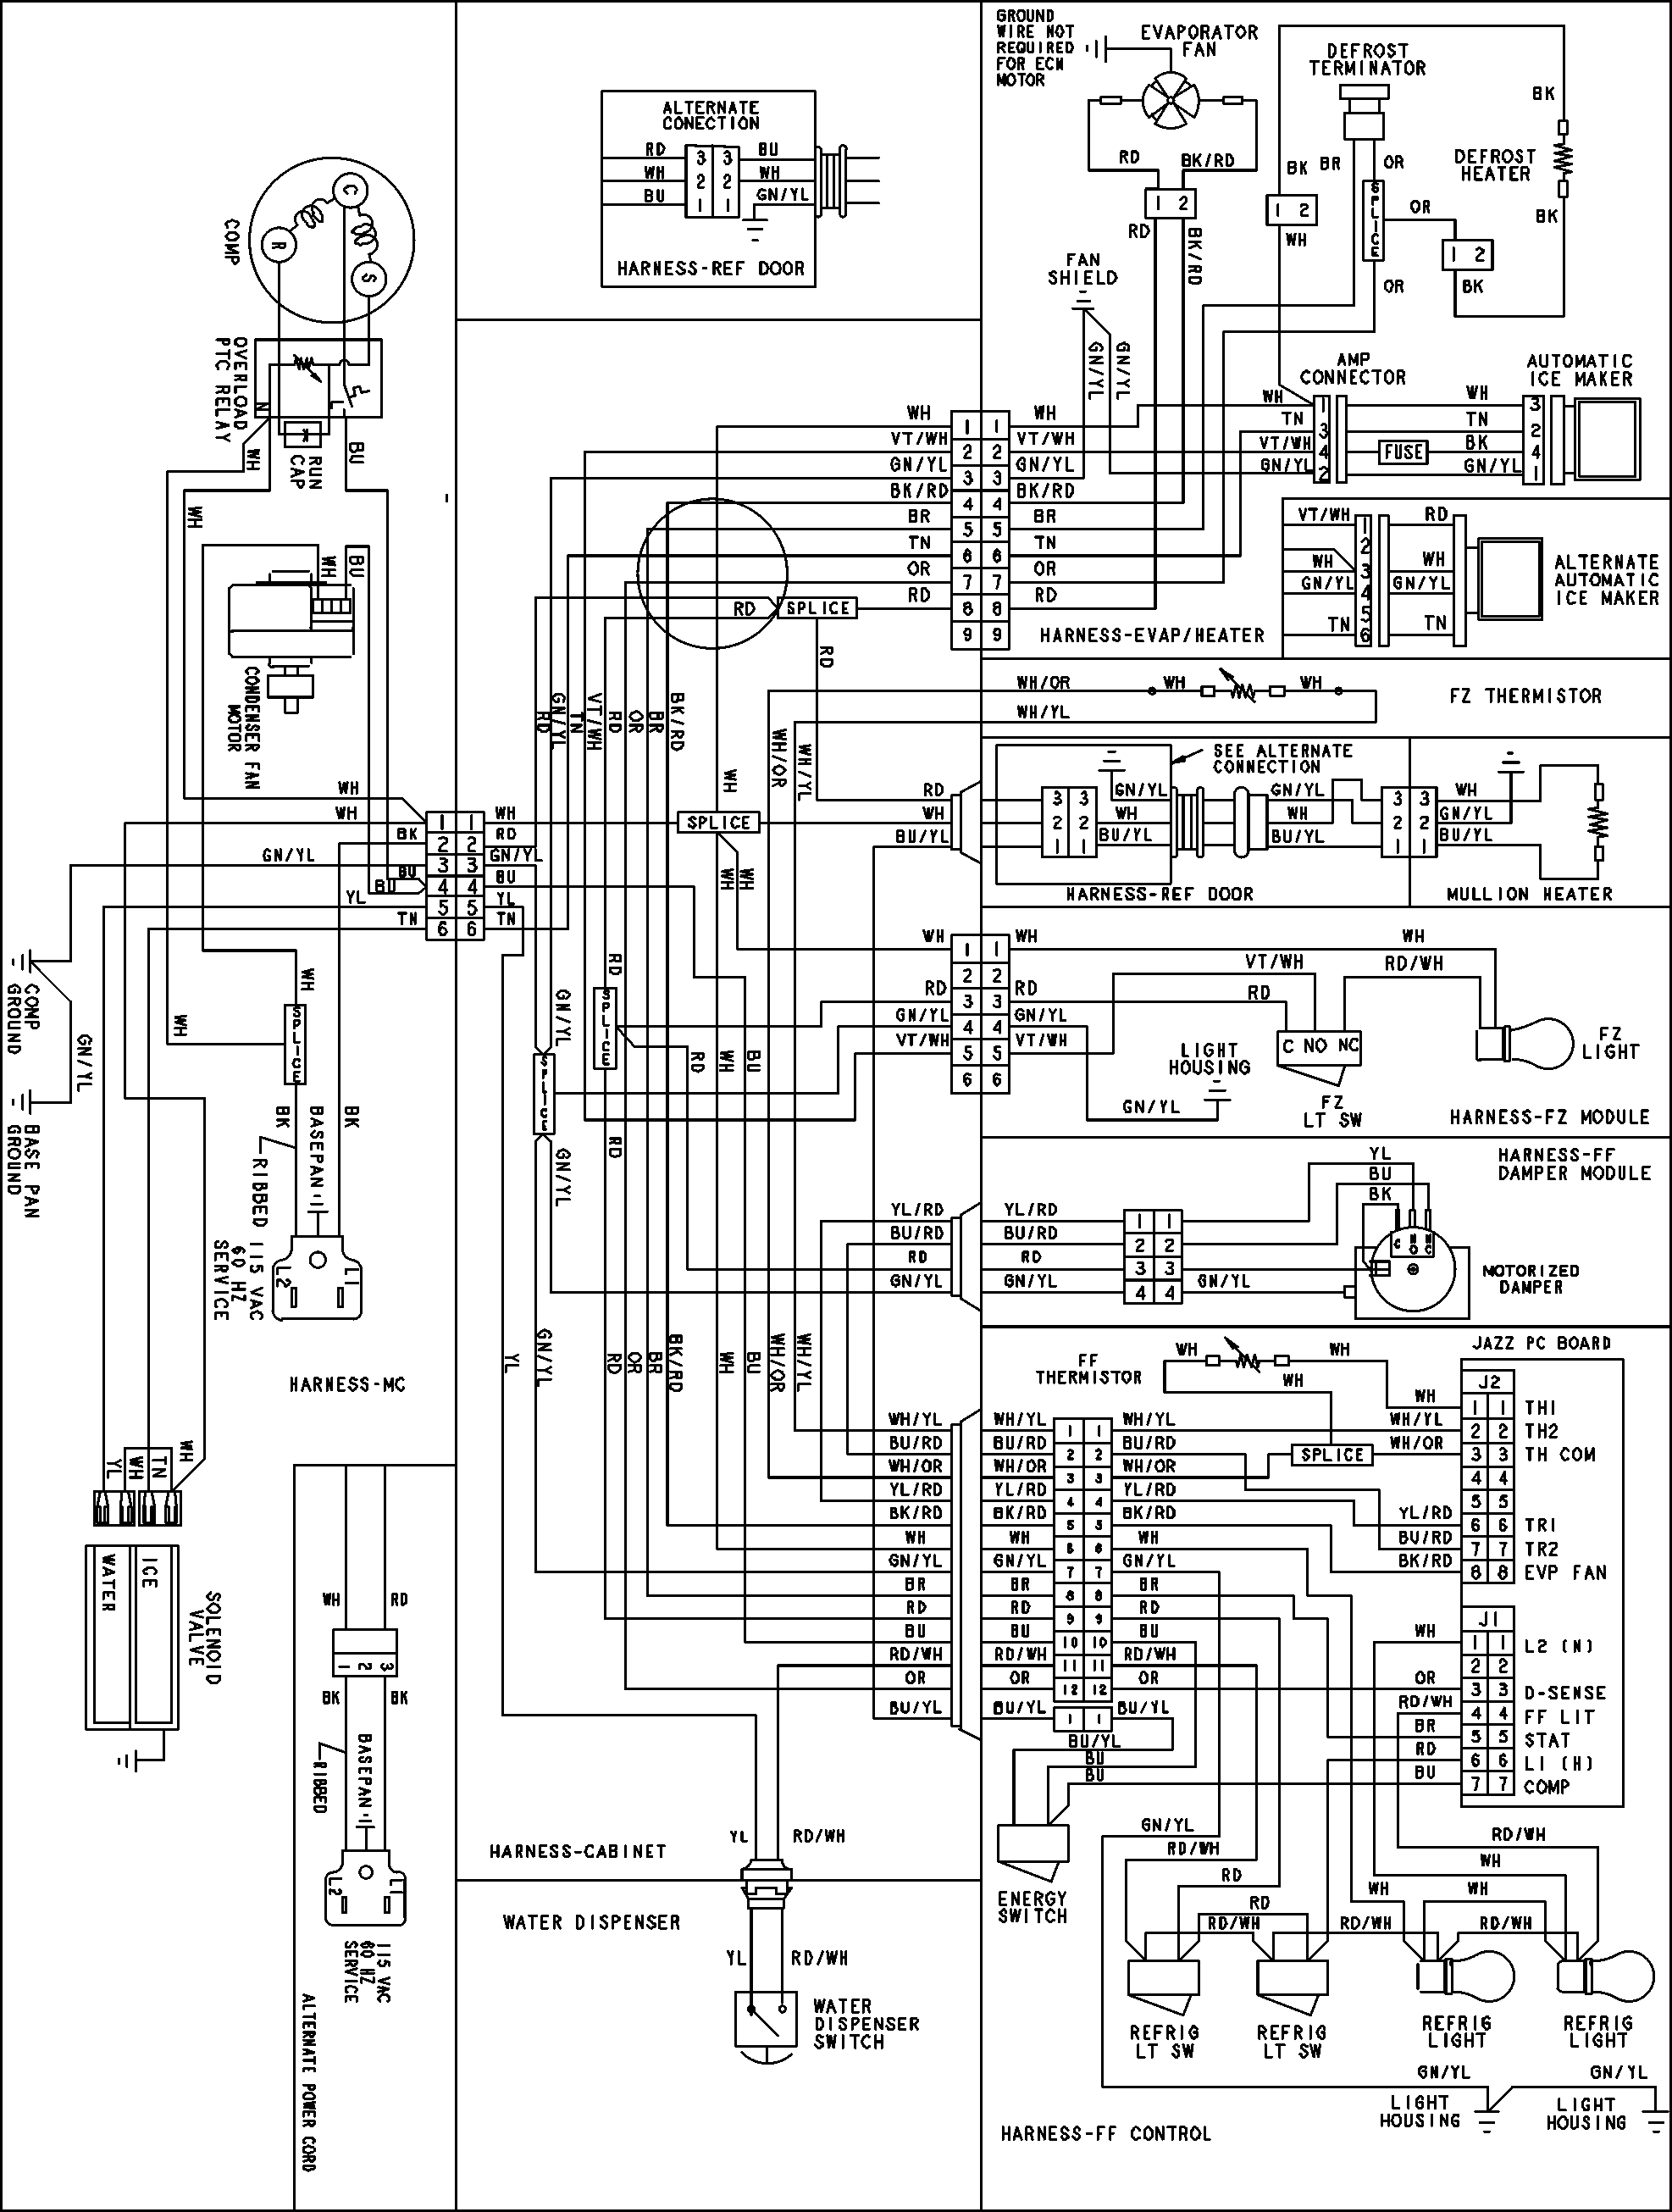 Diagram Ptac Wiring Ge Zr880851 - Wiring Diagram M10 on